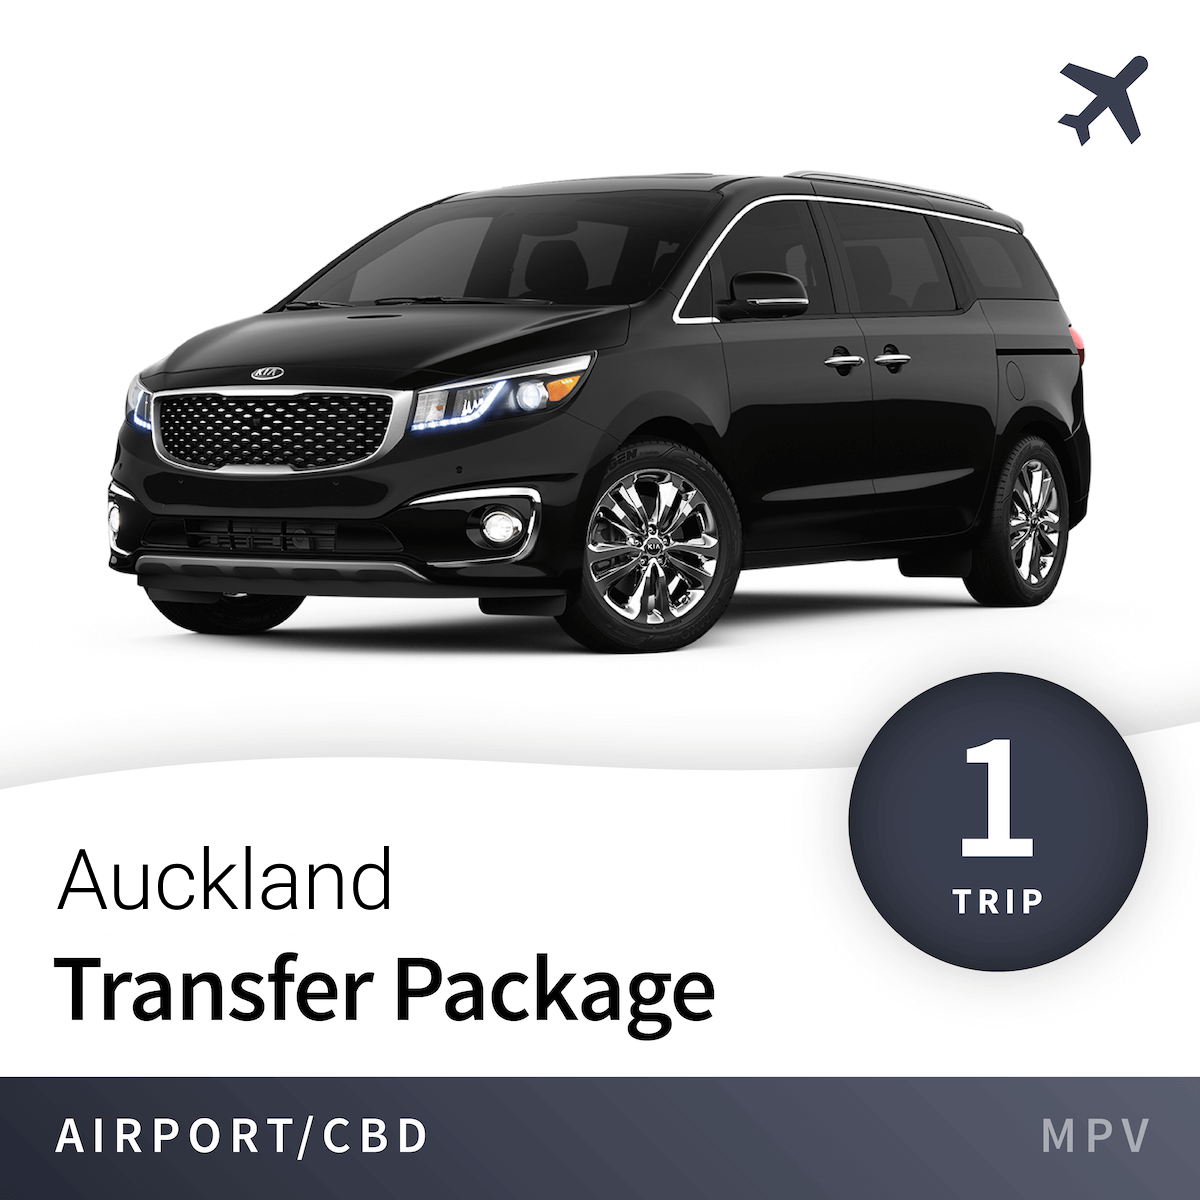 Auckland Airport Transfer Package – MPV (1 Trip) 1